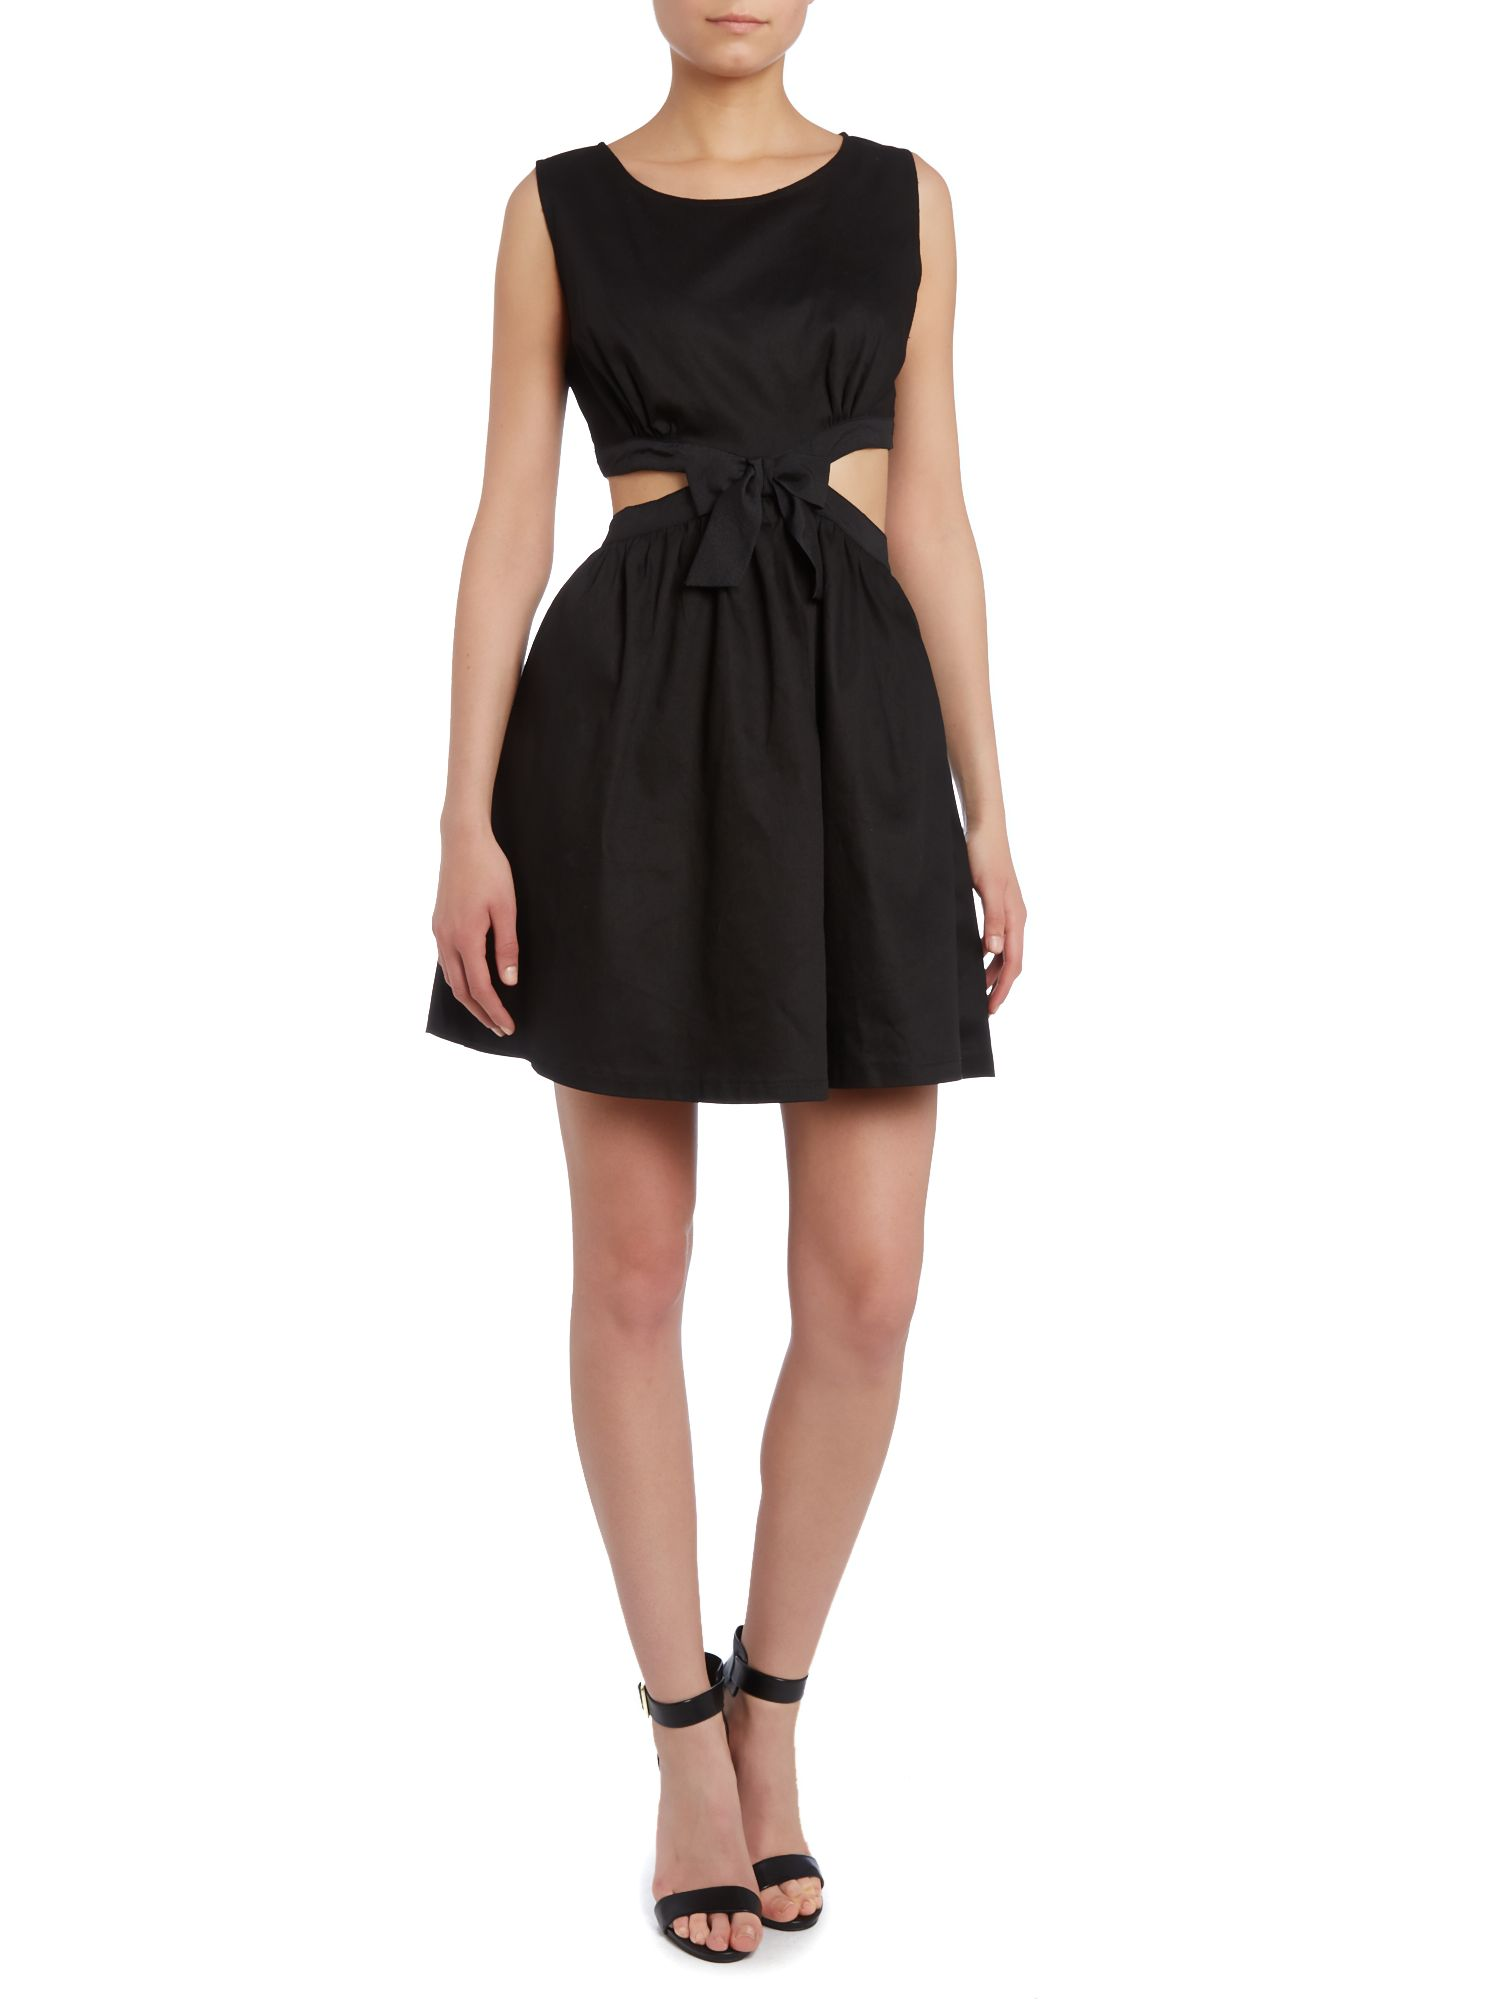 Cut out dress with bow